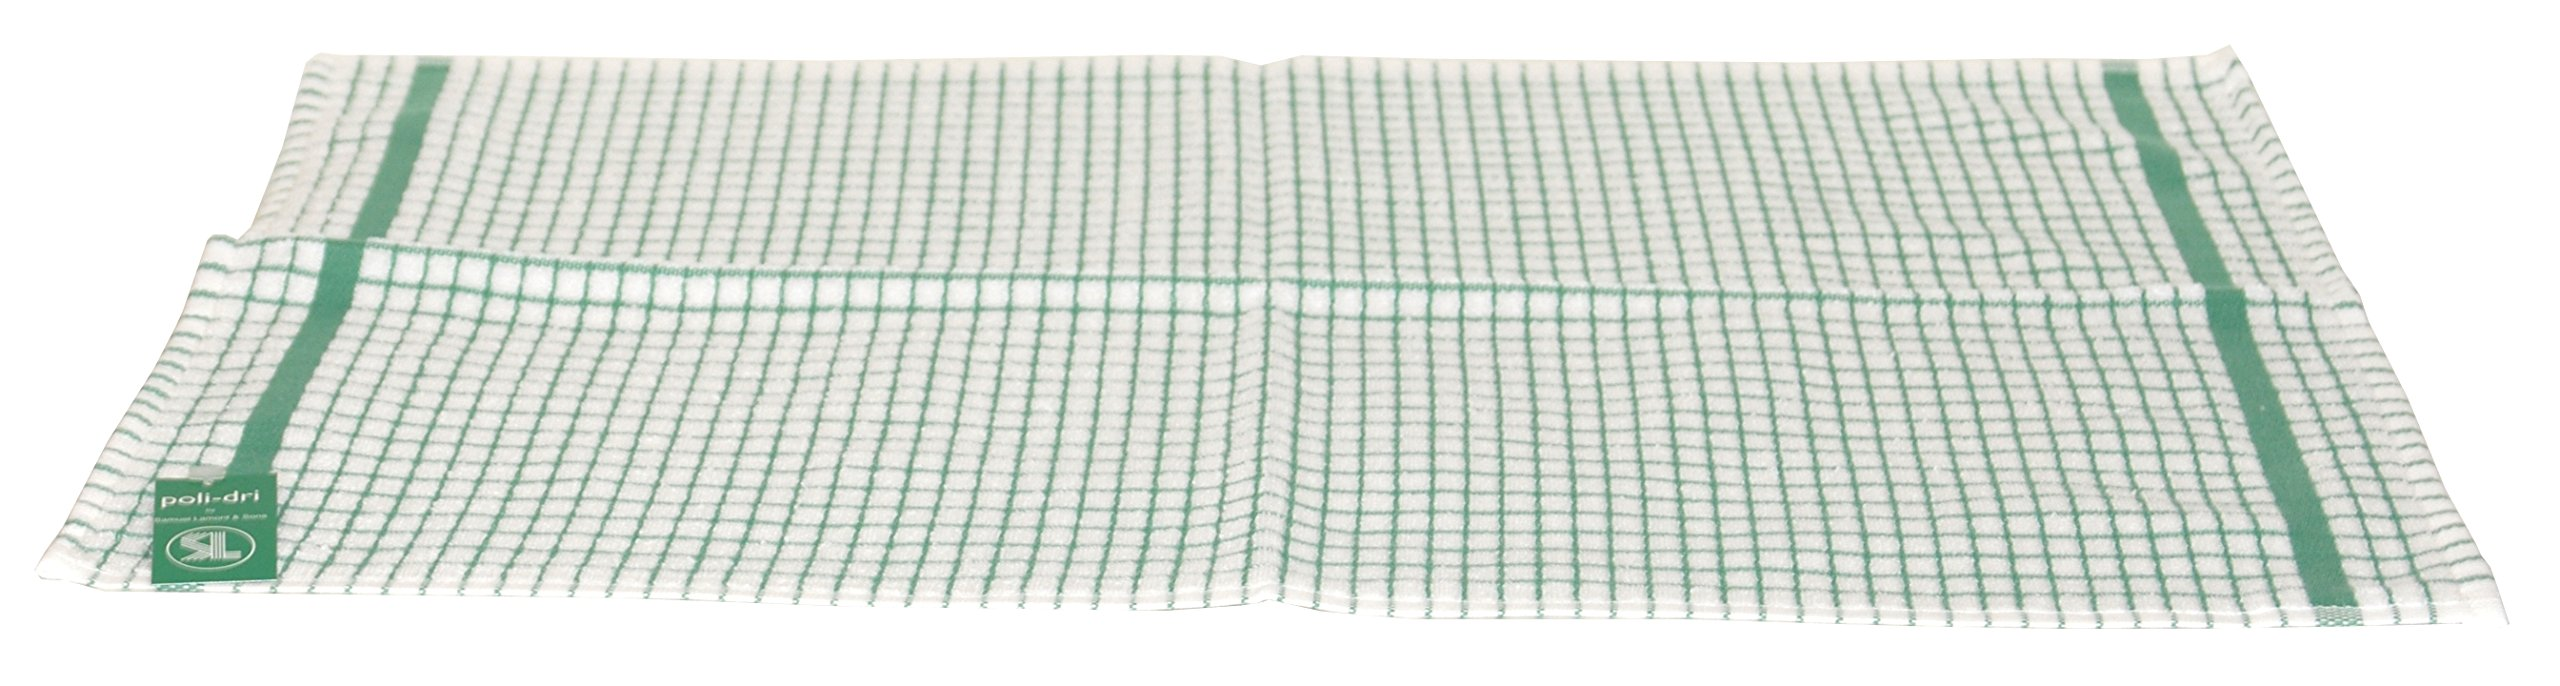 Samuel Lamont and Sons Poli-Dry Kitchen Towel Sets (Green) (6) by Samuel Lamont & Sons